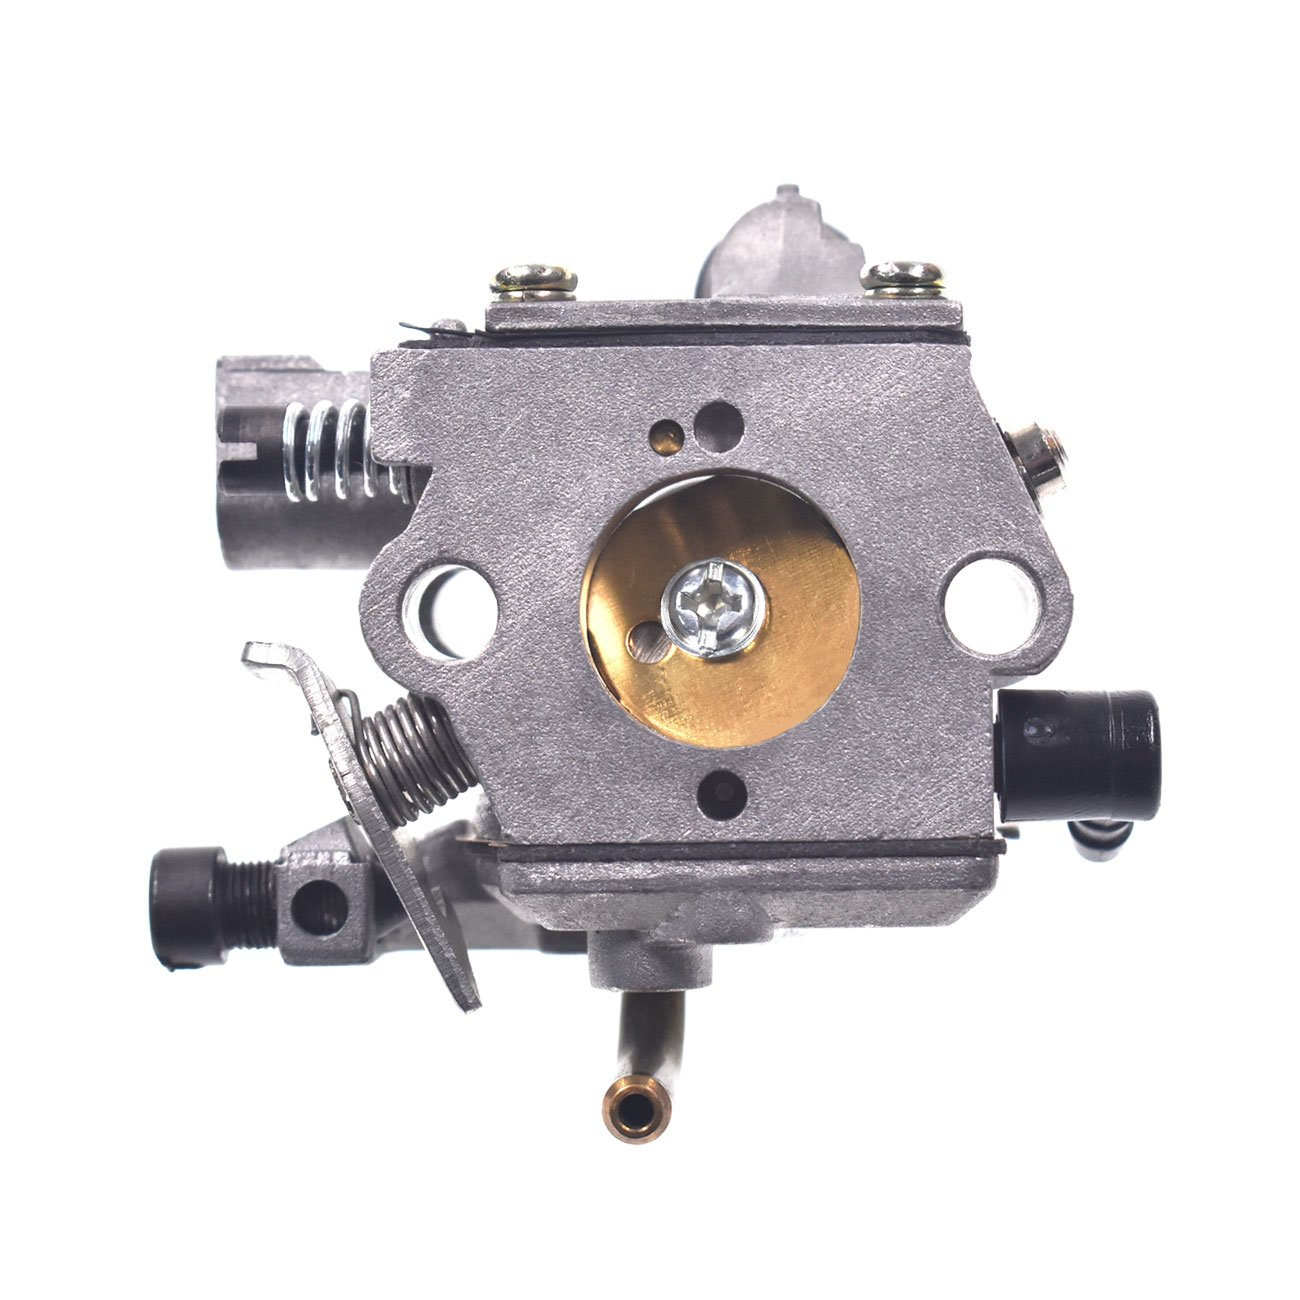 UAUS Carburetor For Fits STIHL 024 MS240 MS260 MS 240 260 Chainsaw Carb WT403B/11211200610/